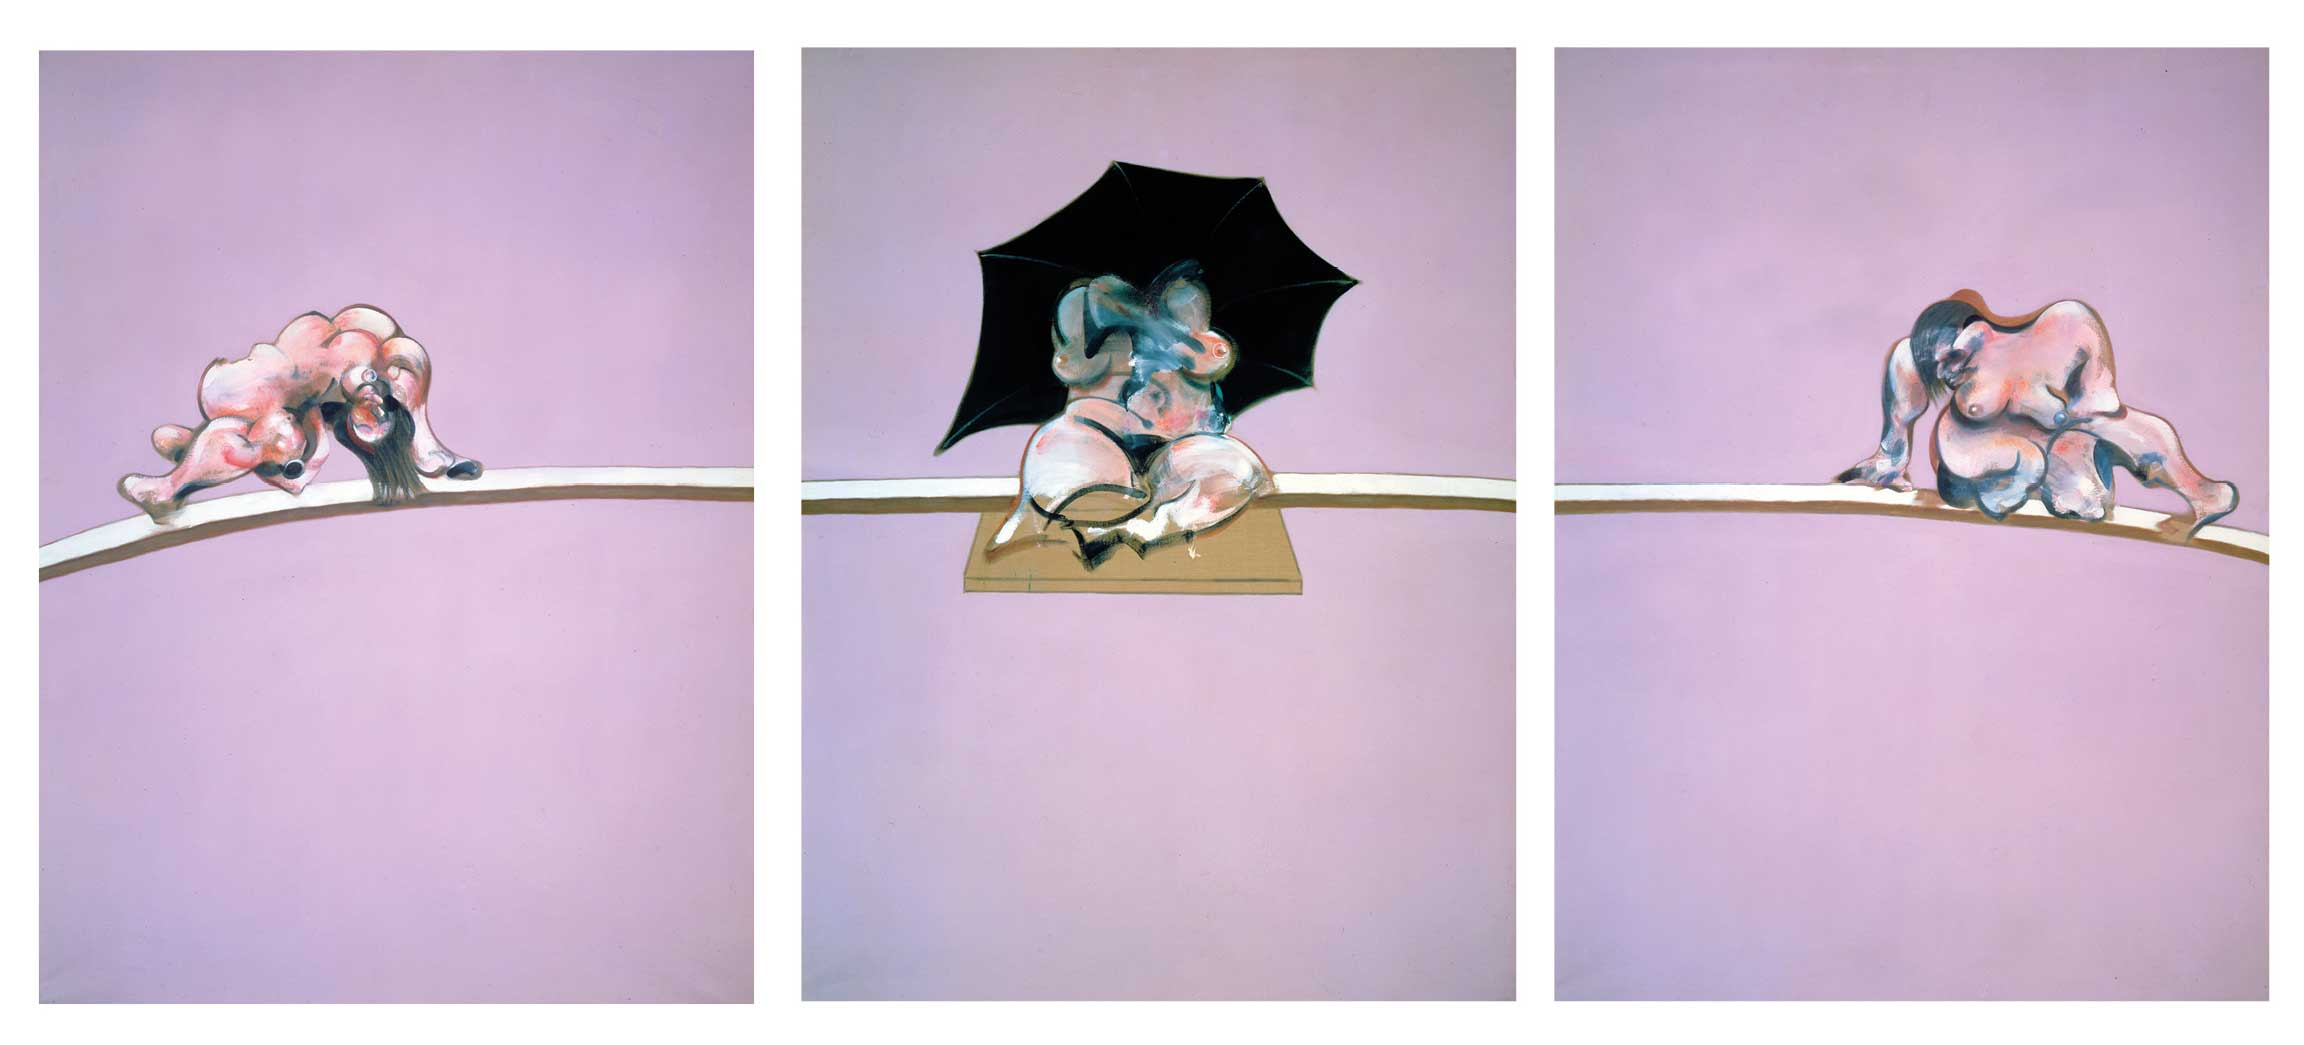 Francis Bacon, Studies of the Human Body, 1970, Oil on canvas. © The Estate of Francis Bacon, All rights reserved, DACS 2016, Courtesy: Ordovas